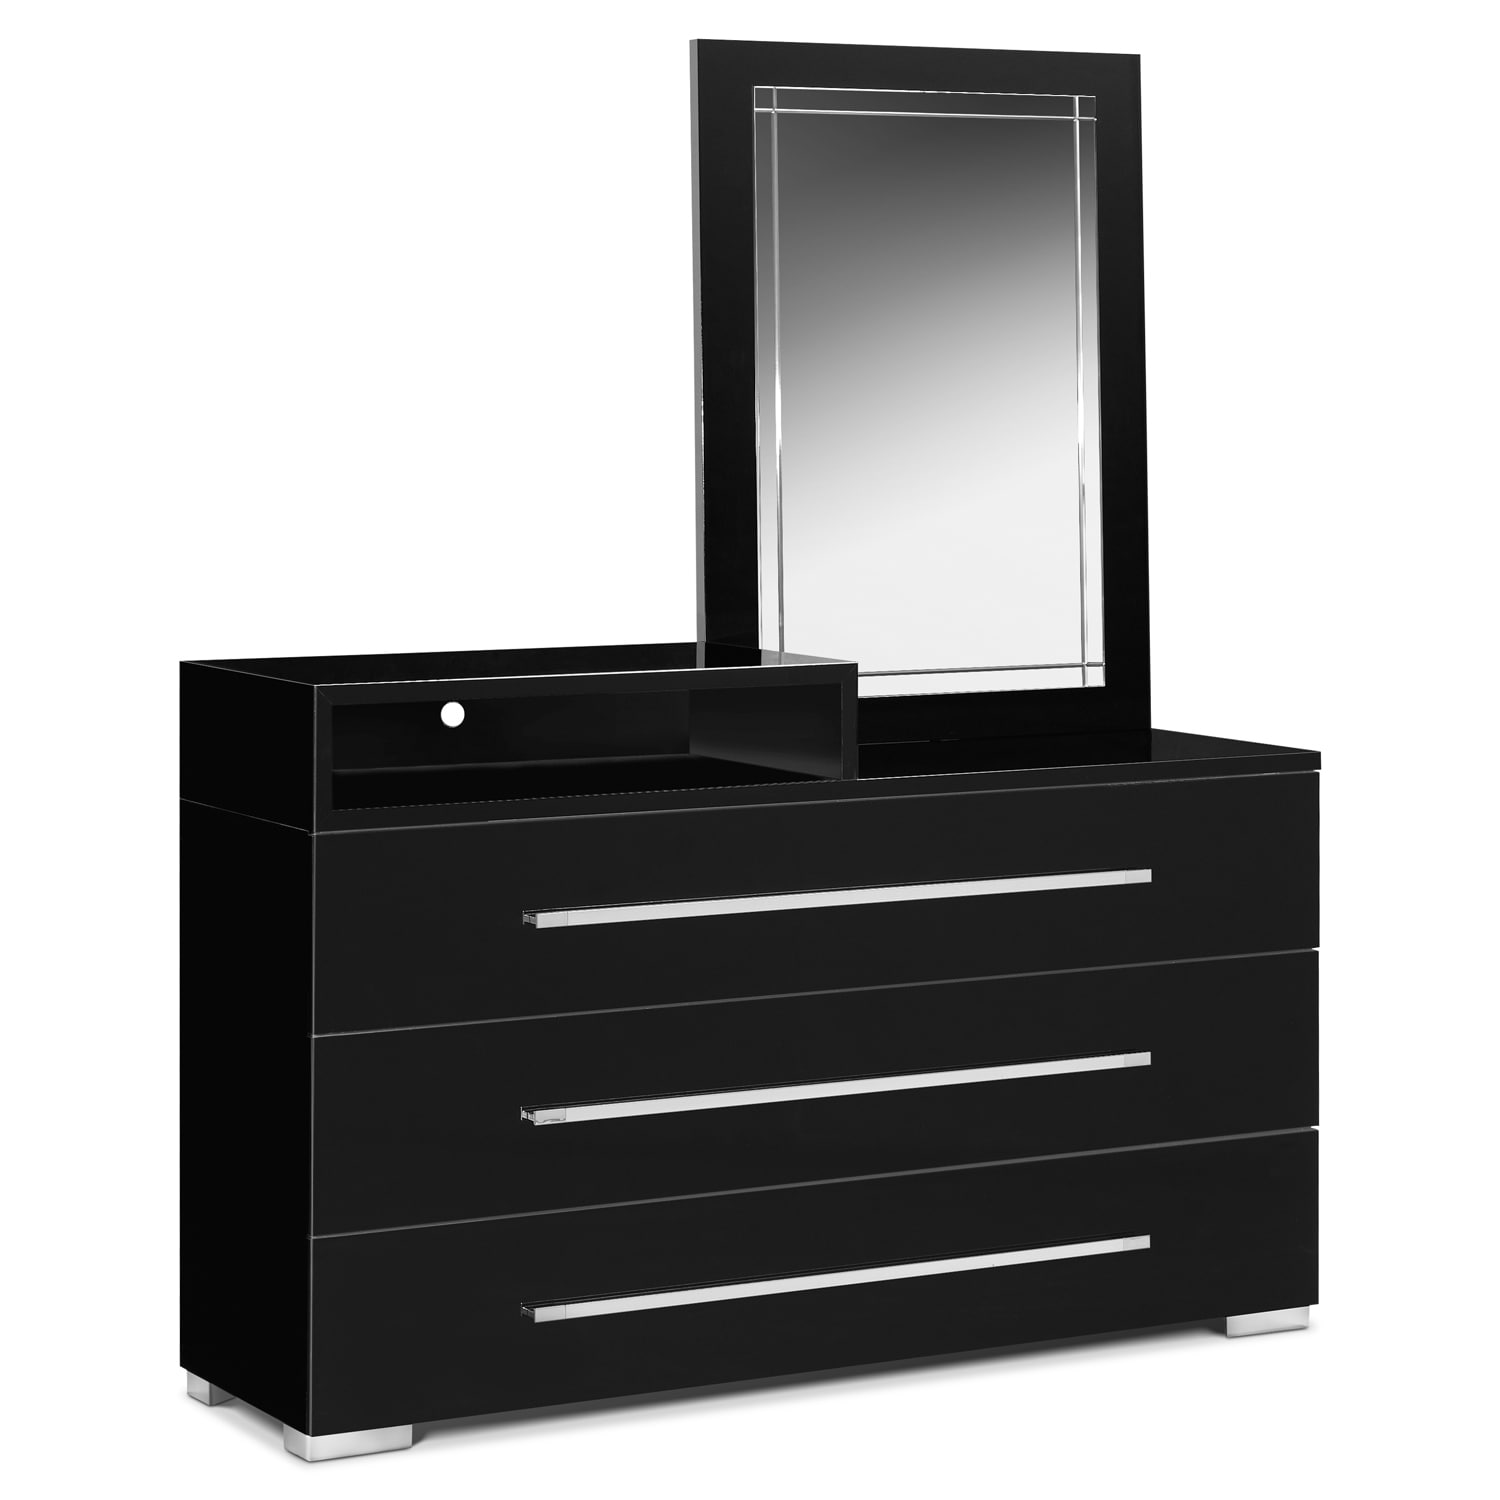 Dimora dresser with deck and mirror black value city for Bedroom dressers